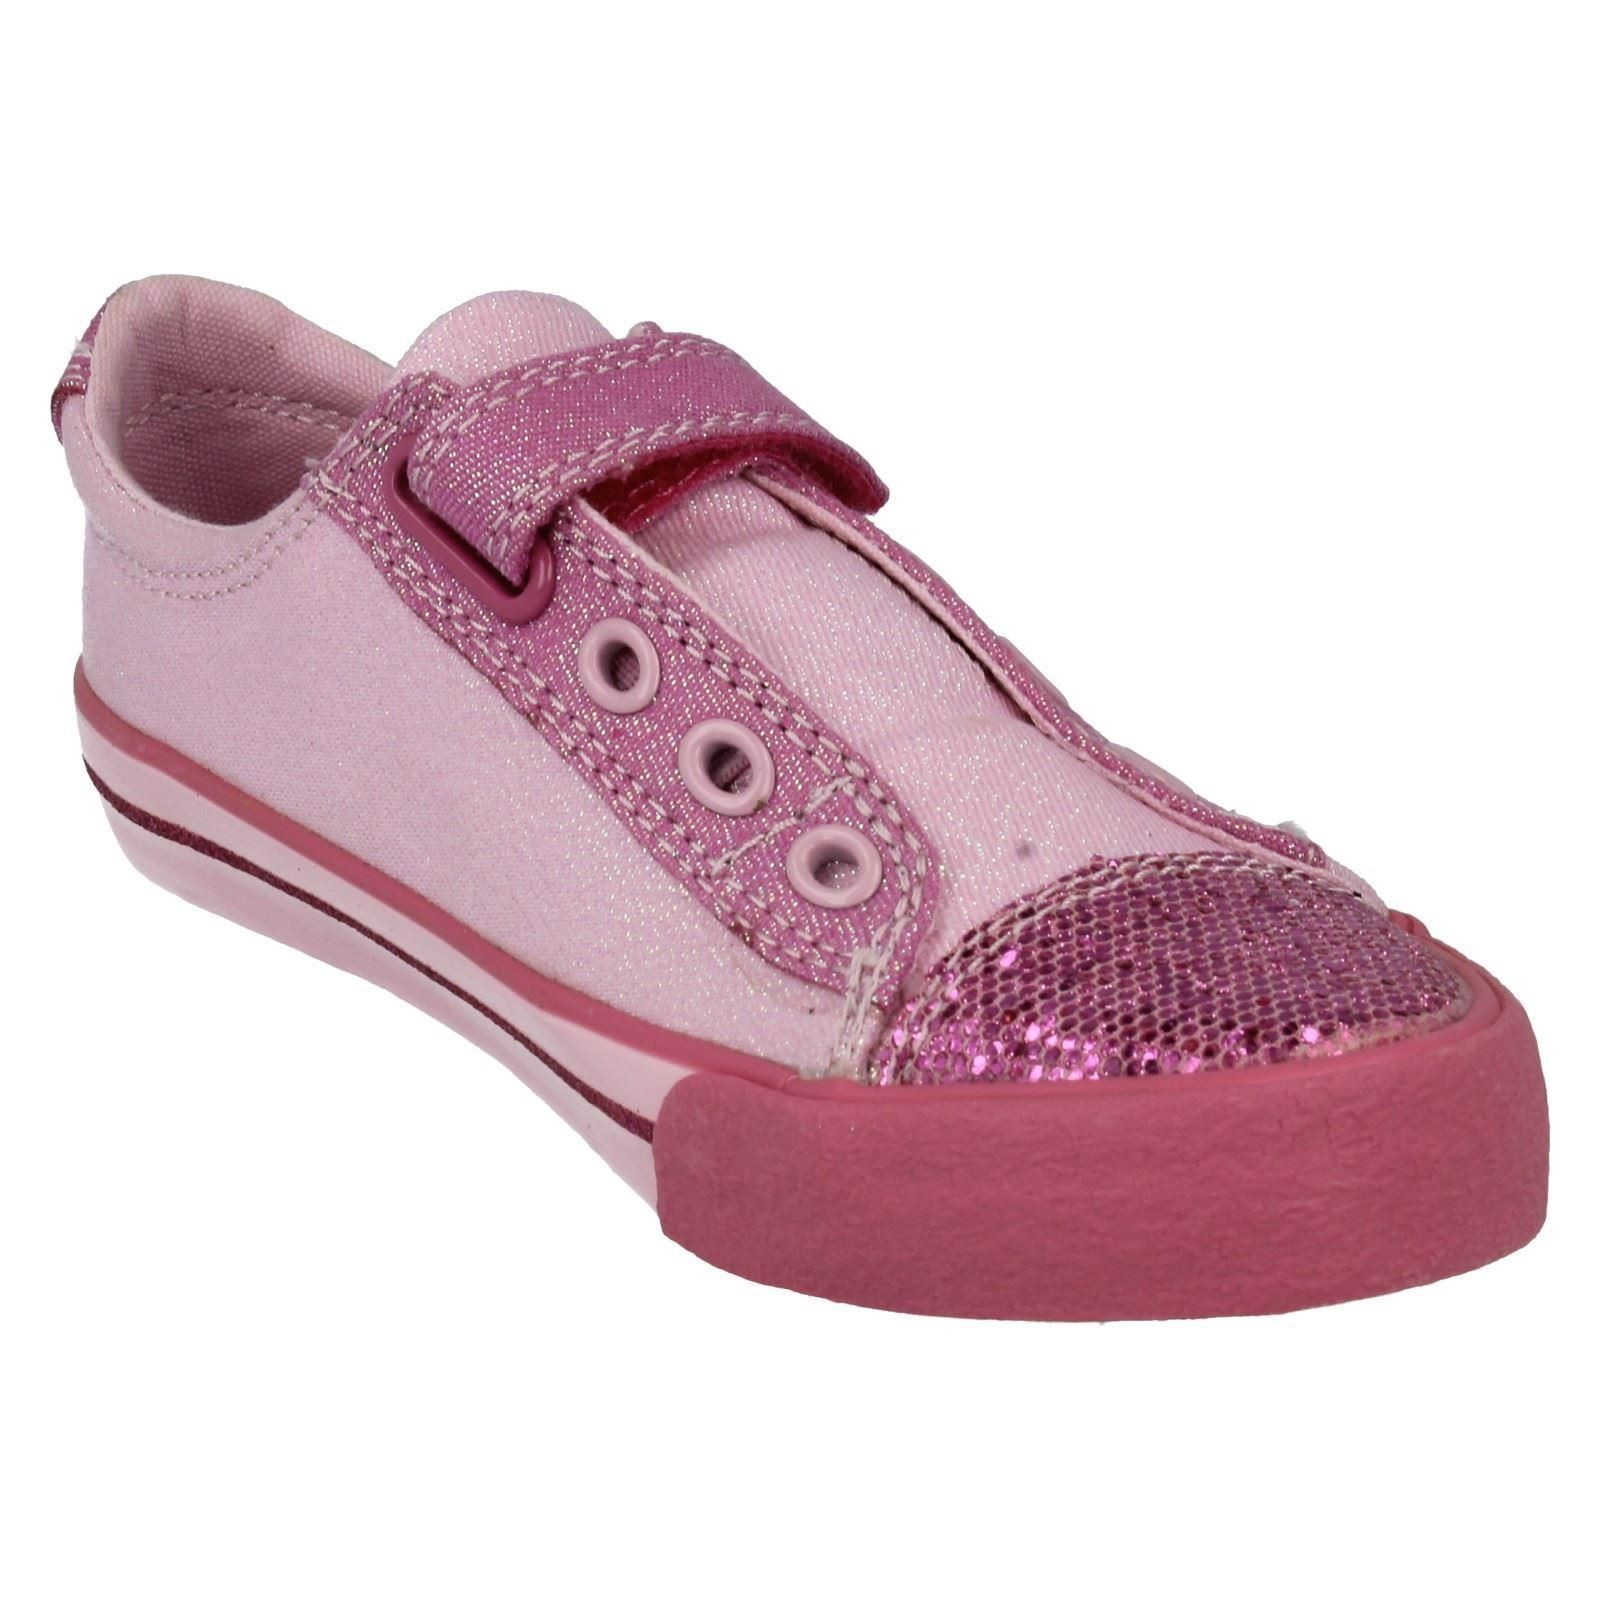 Girls Clarks Doodles Shoes - Glitterbe Inf